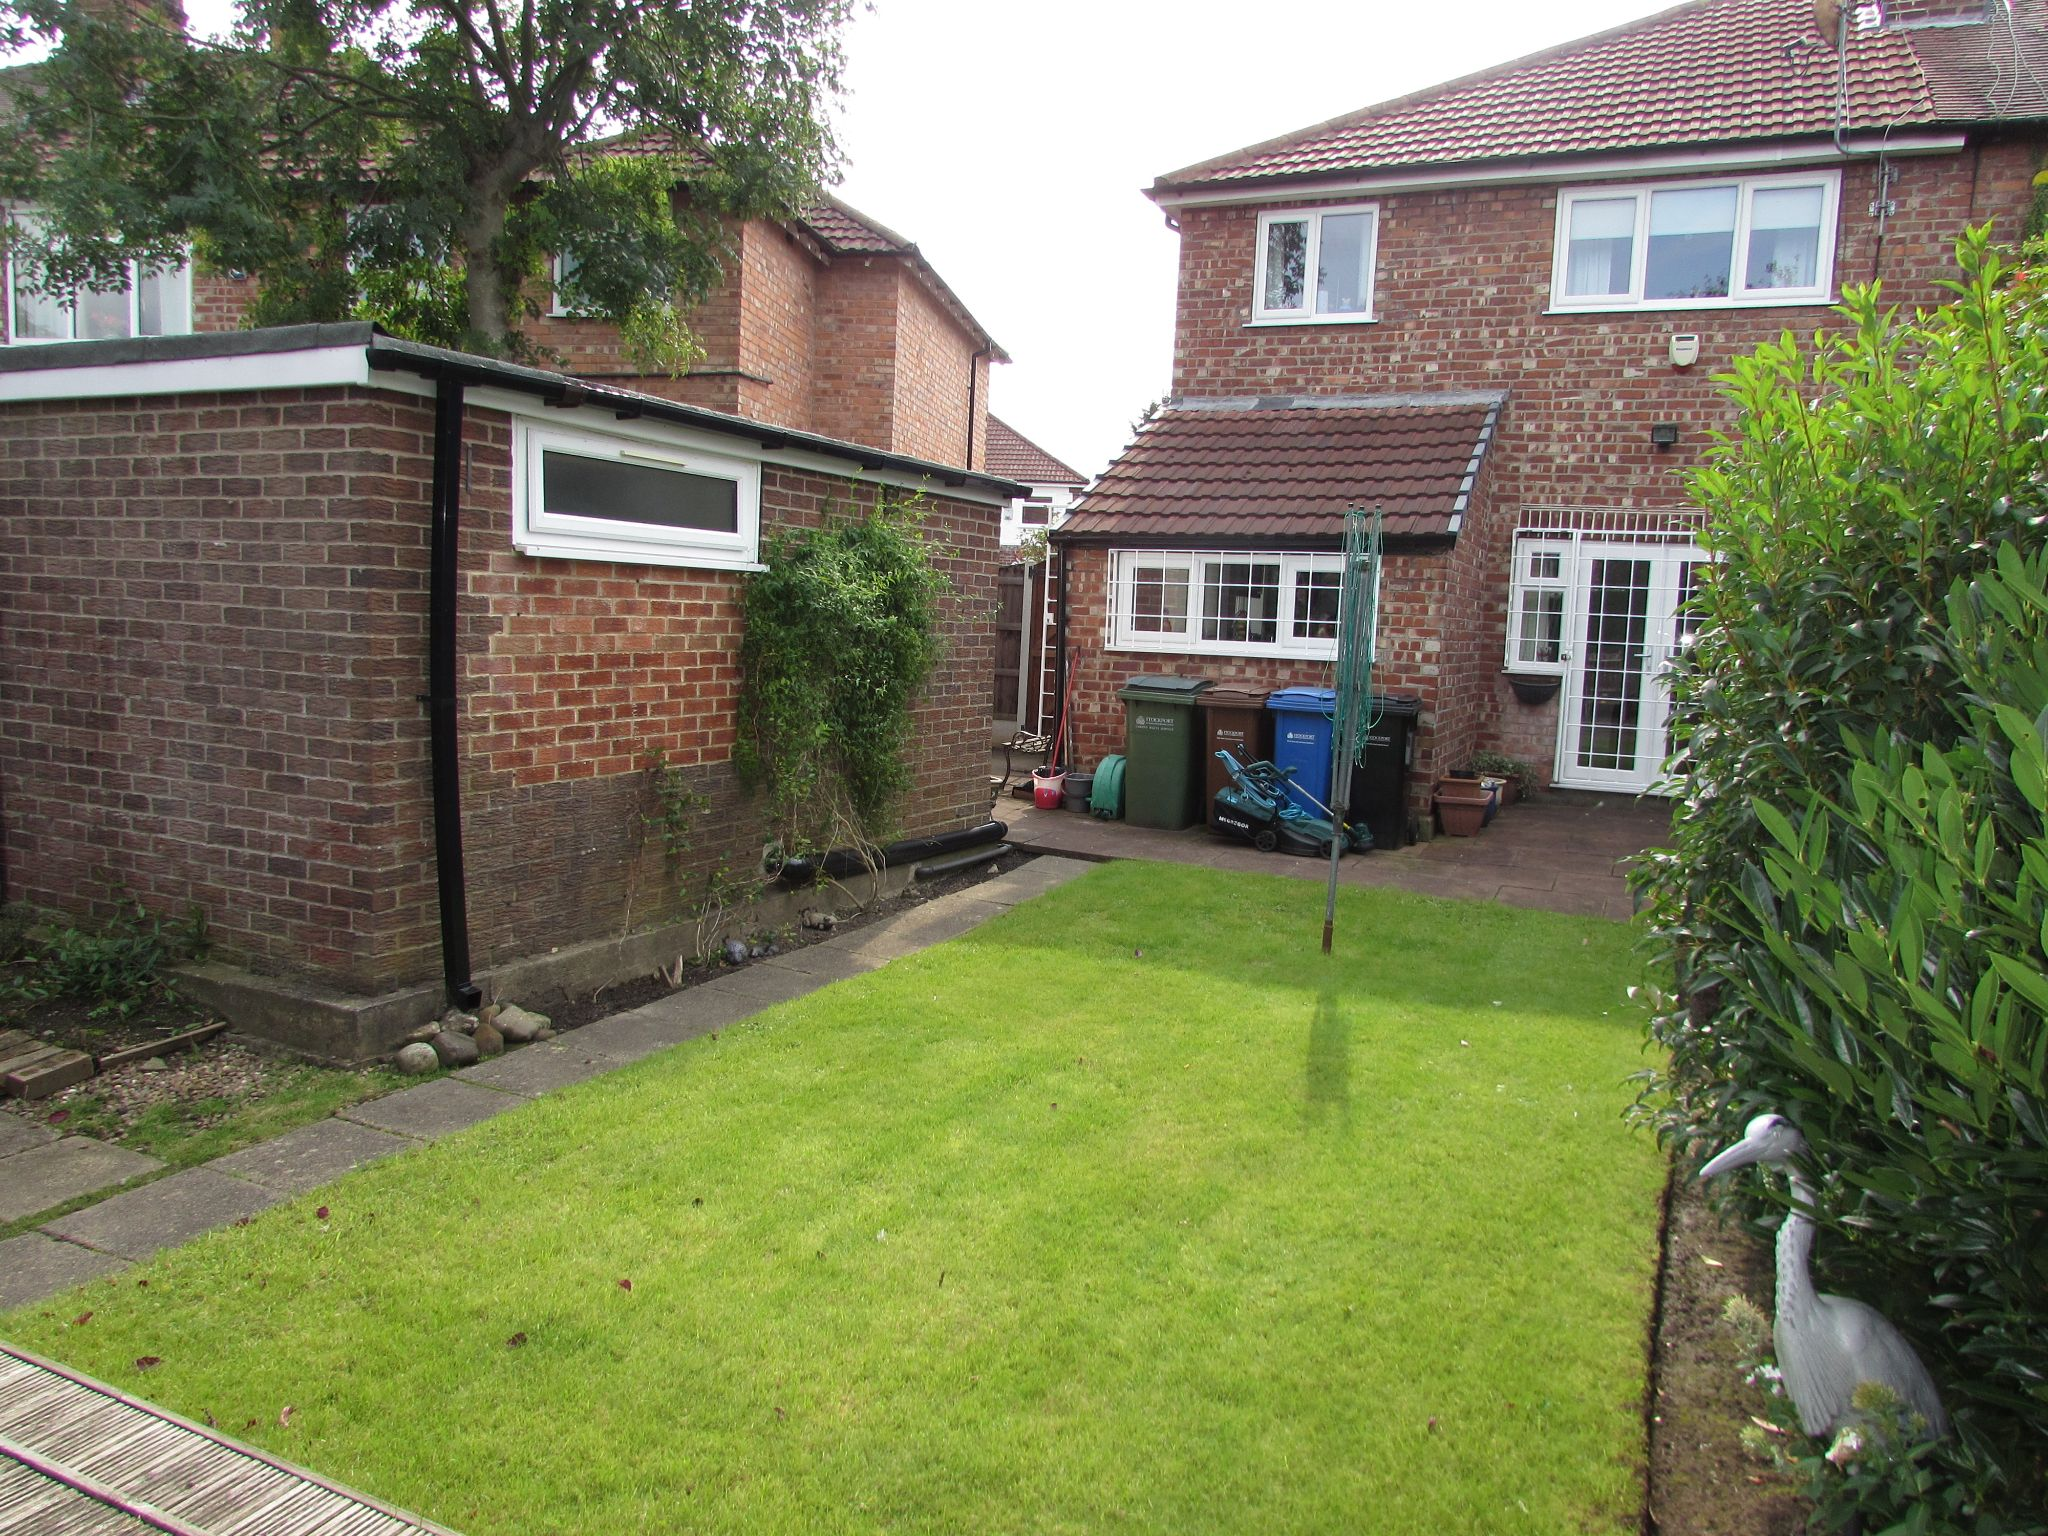 3 Bedroom Semi-detached House For Sale - Photograph 32